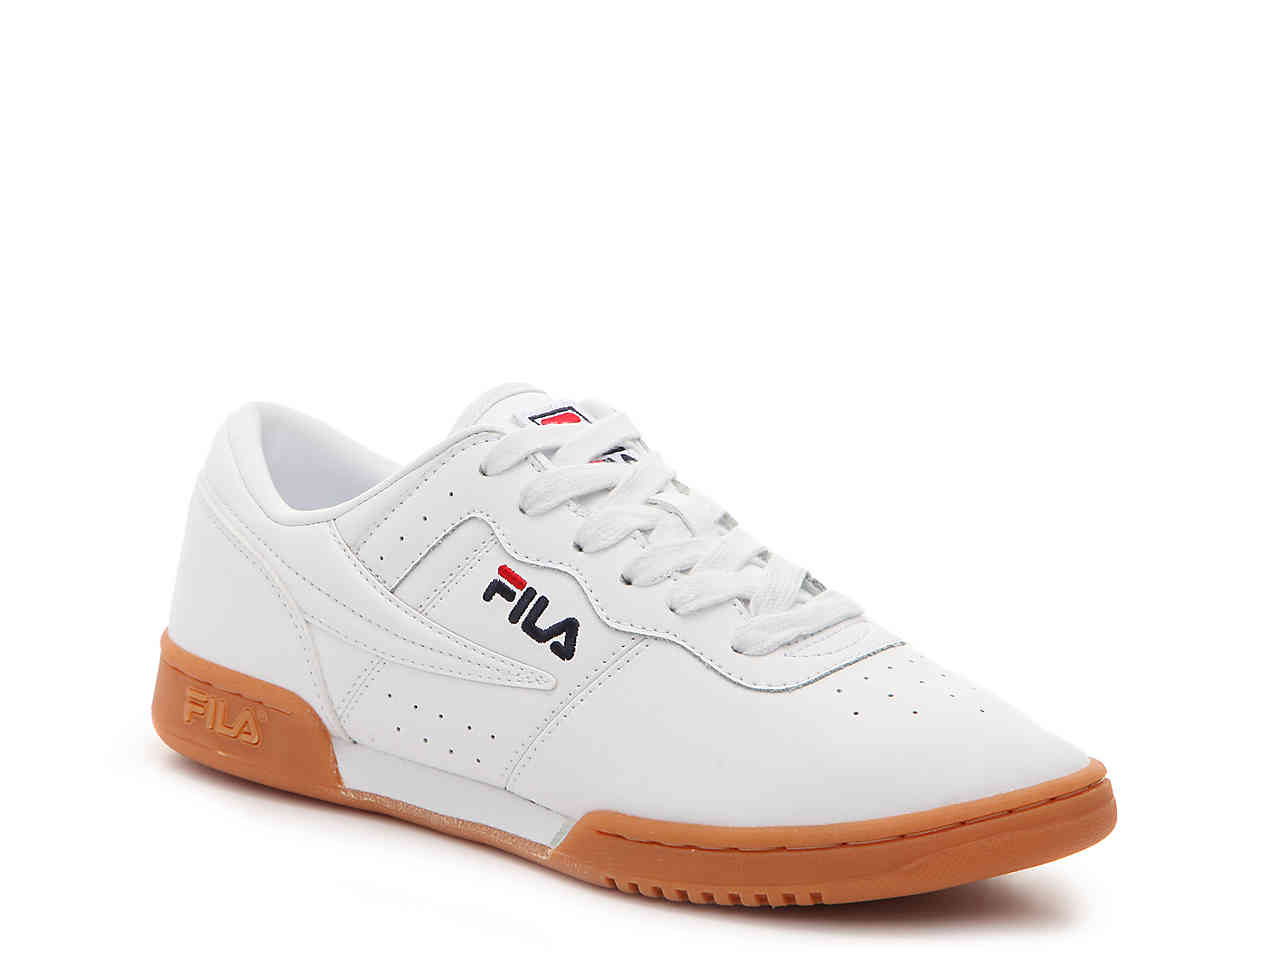 original fila shoes